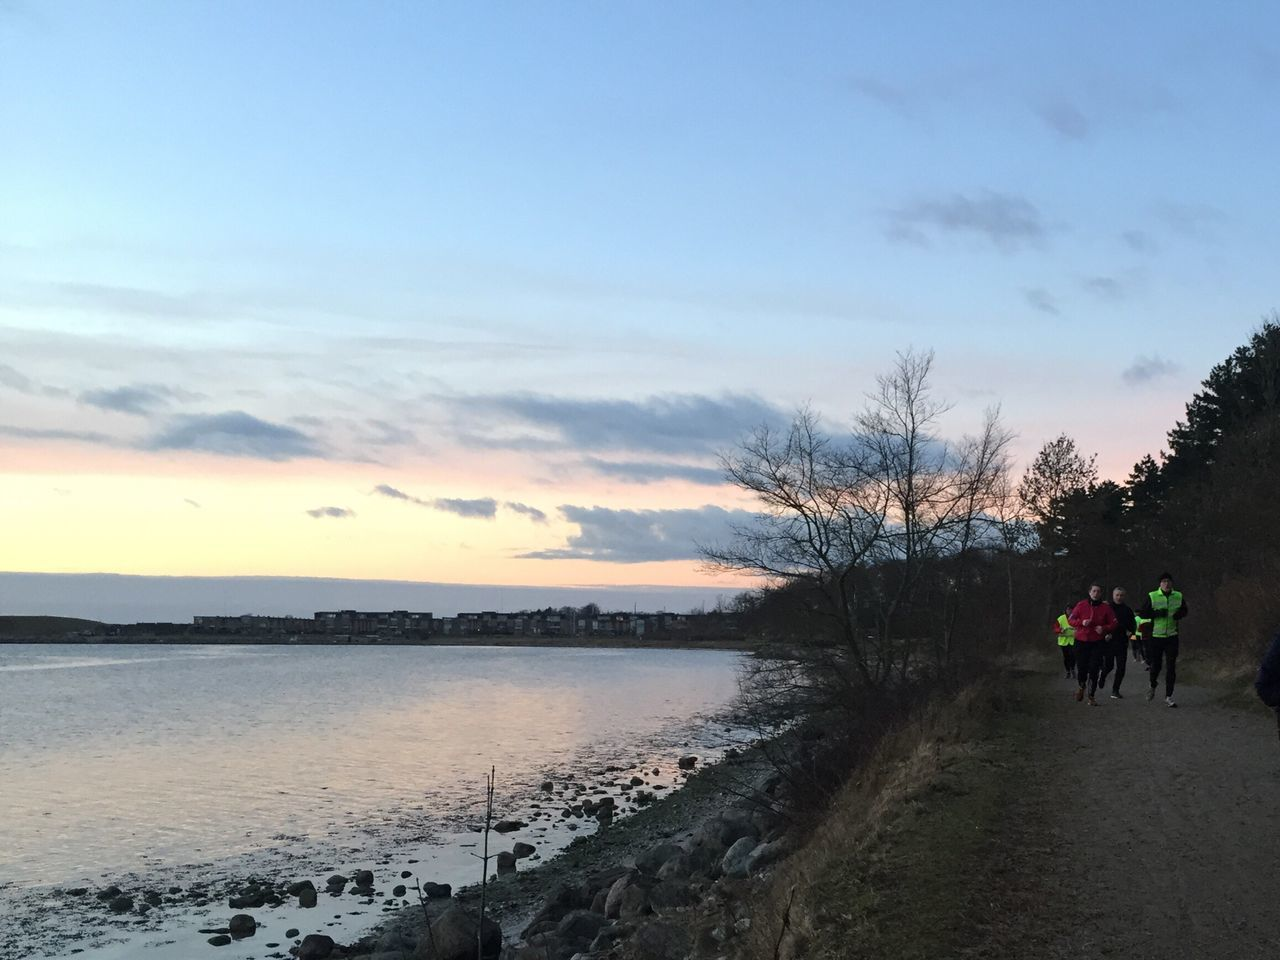 walking, sky, real people, nature, sunset, men, leisure activity, beauty in nature, cloud - sky, scenics, lifestyles, silhouette, two people, outdoors, togetherness, tree, women, bare tree, water, mammal, day, adult, people